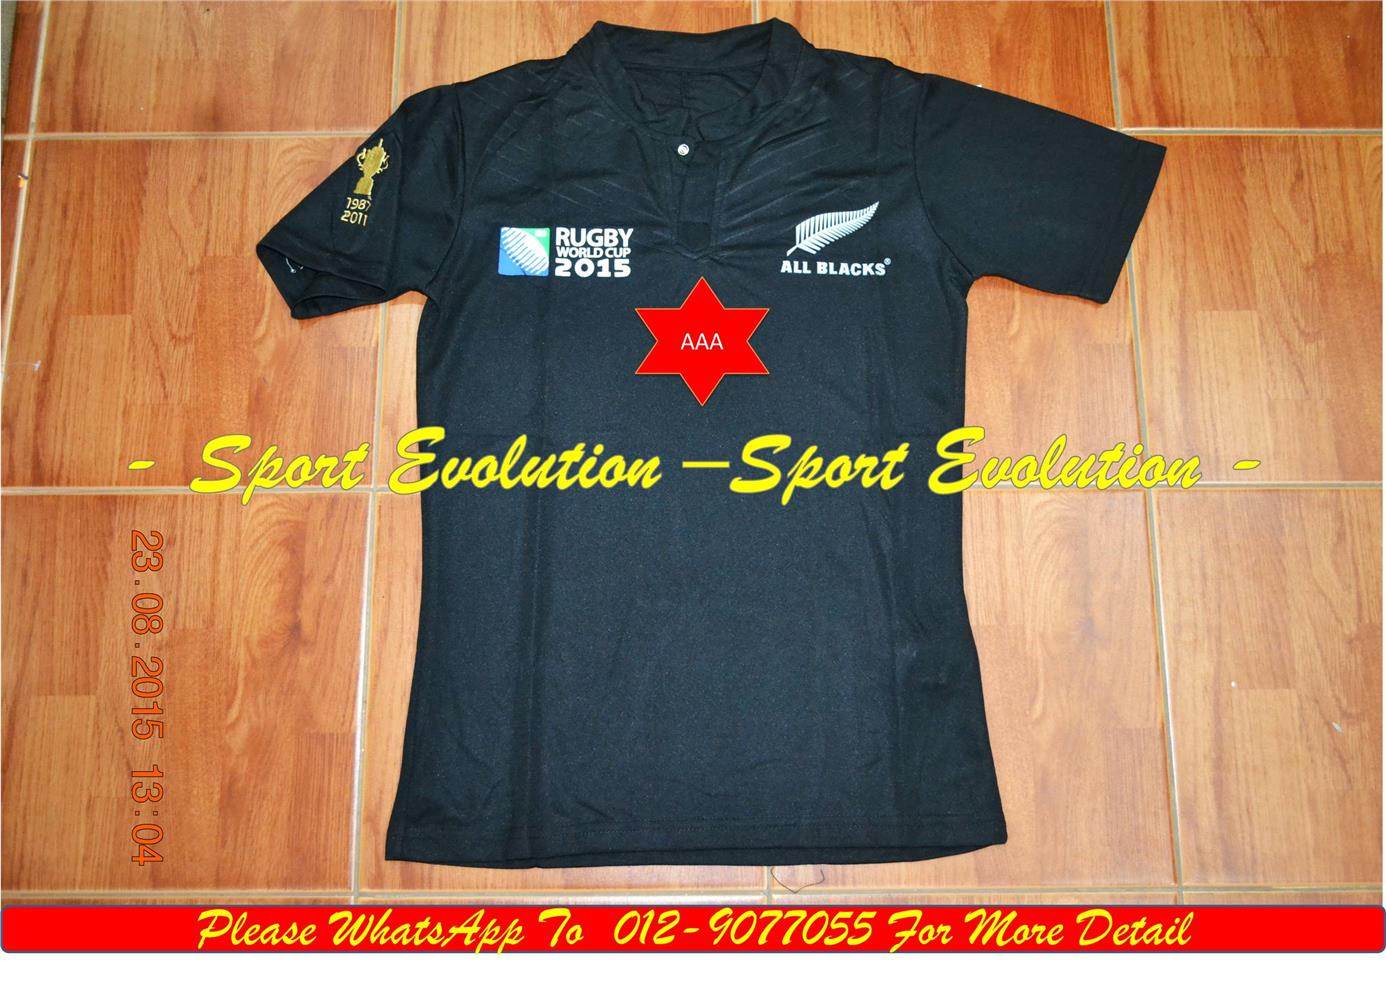 All Black Jersey (Team Order) Black